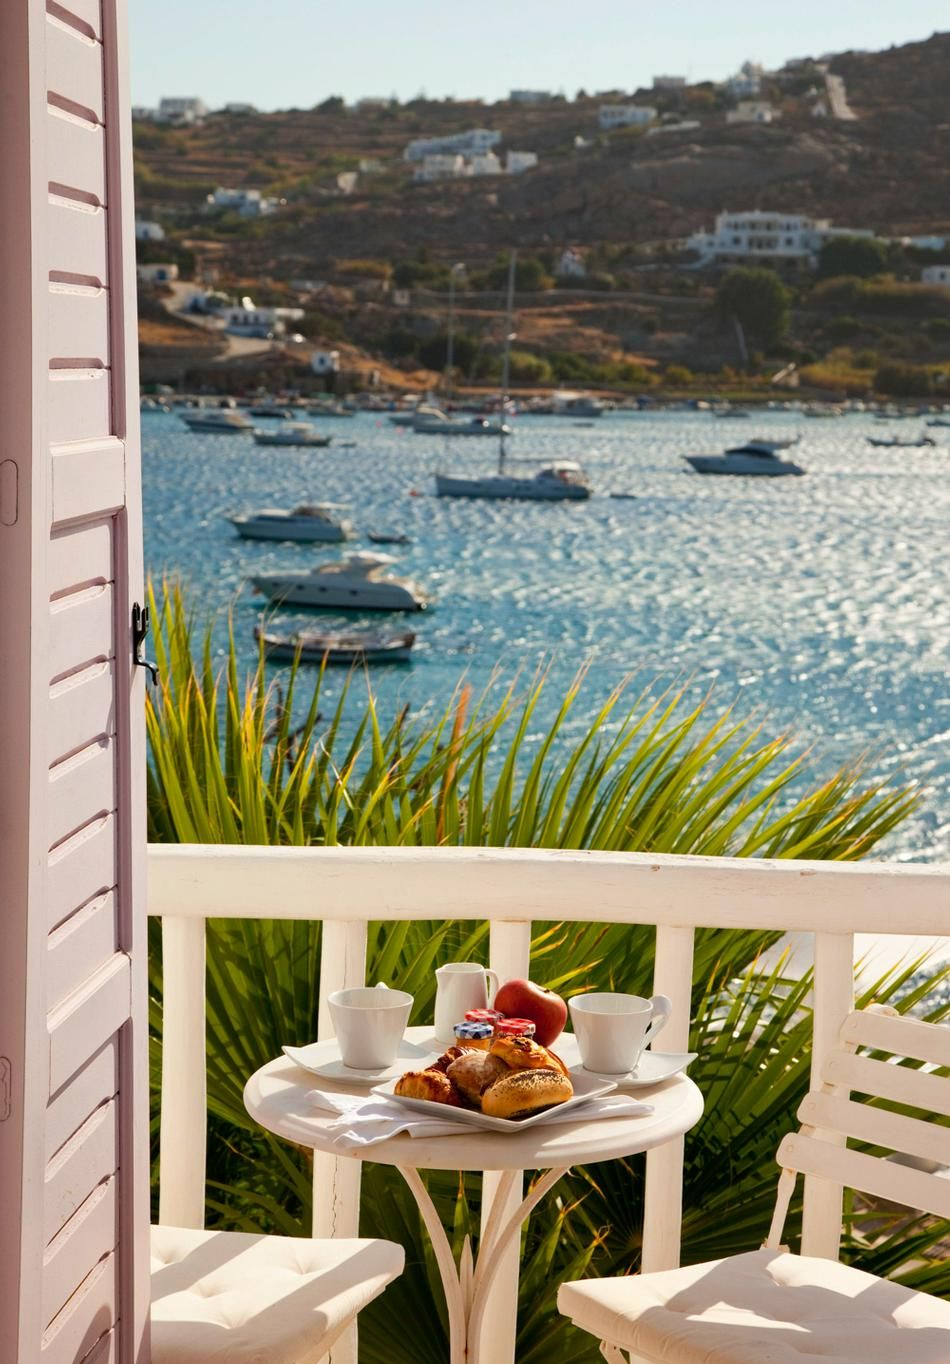 Breakfast with a view, Greece